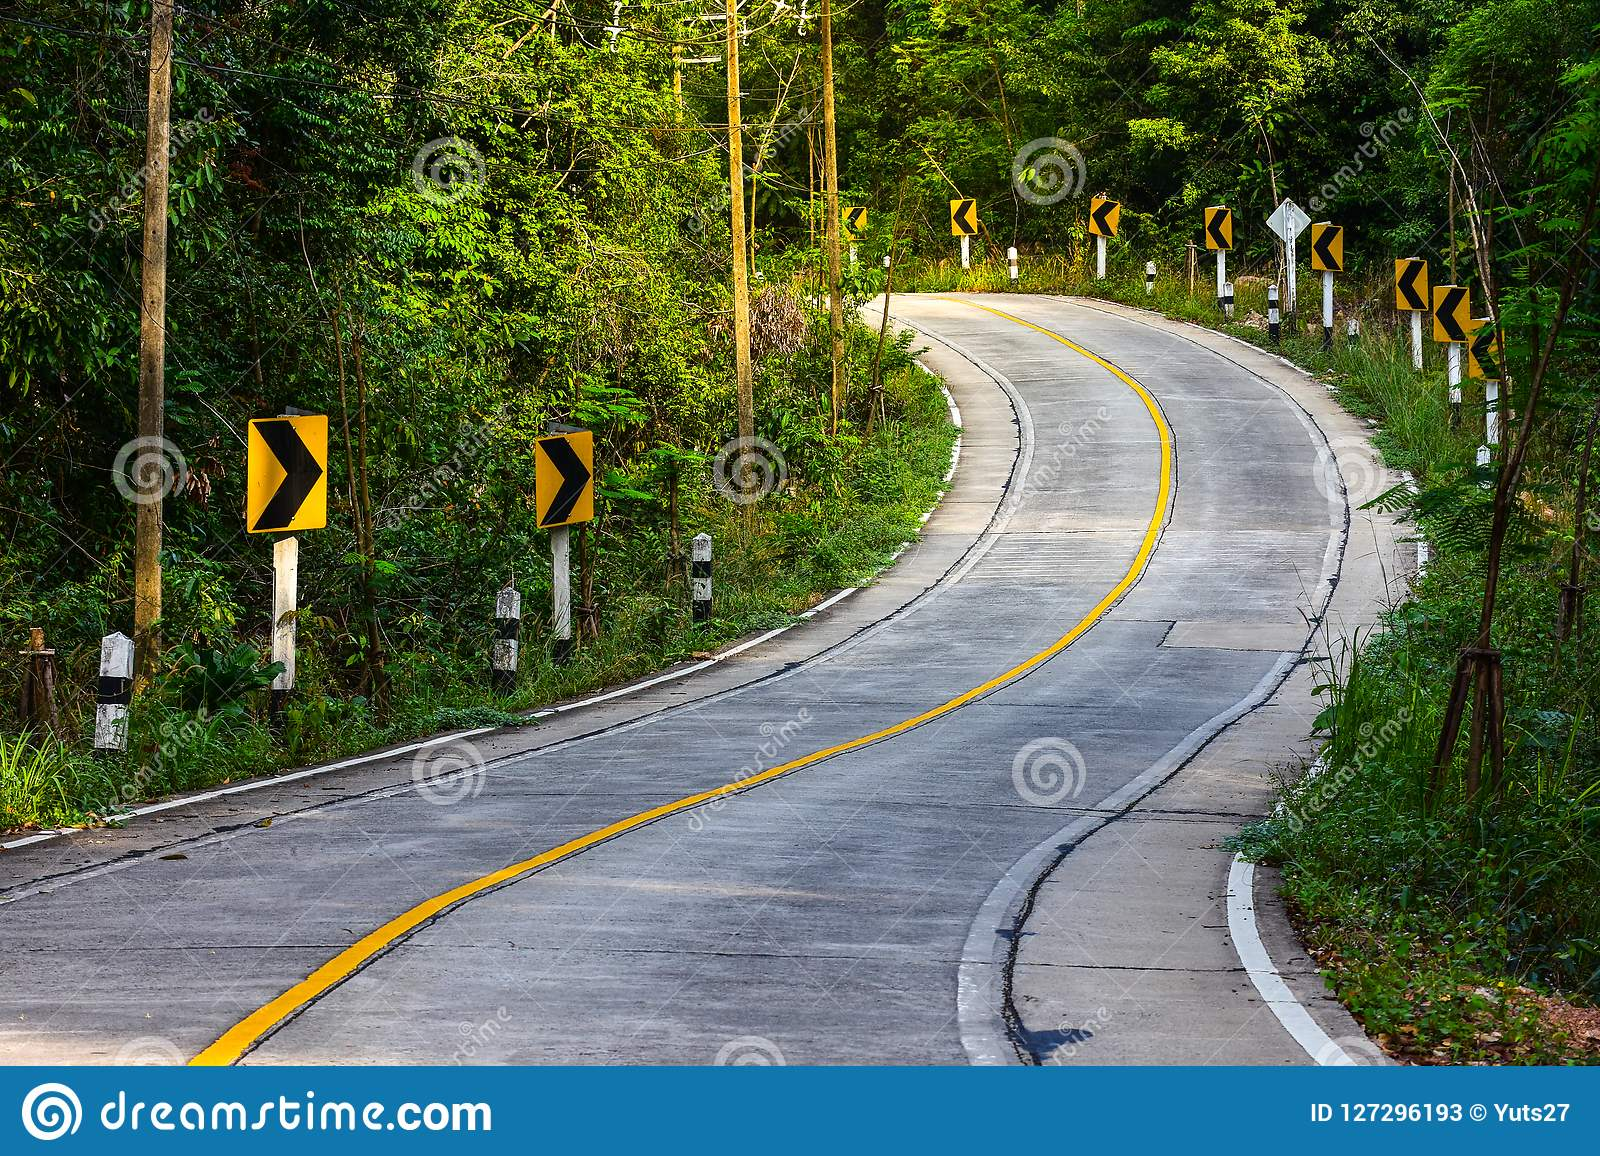 The mountain road view in Thailand, curve road